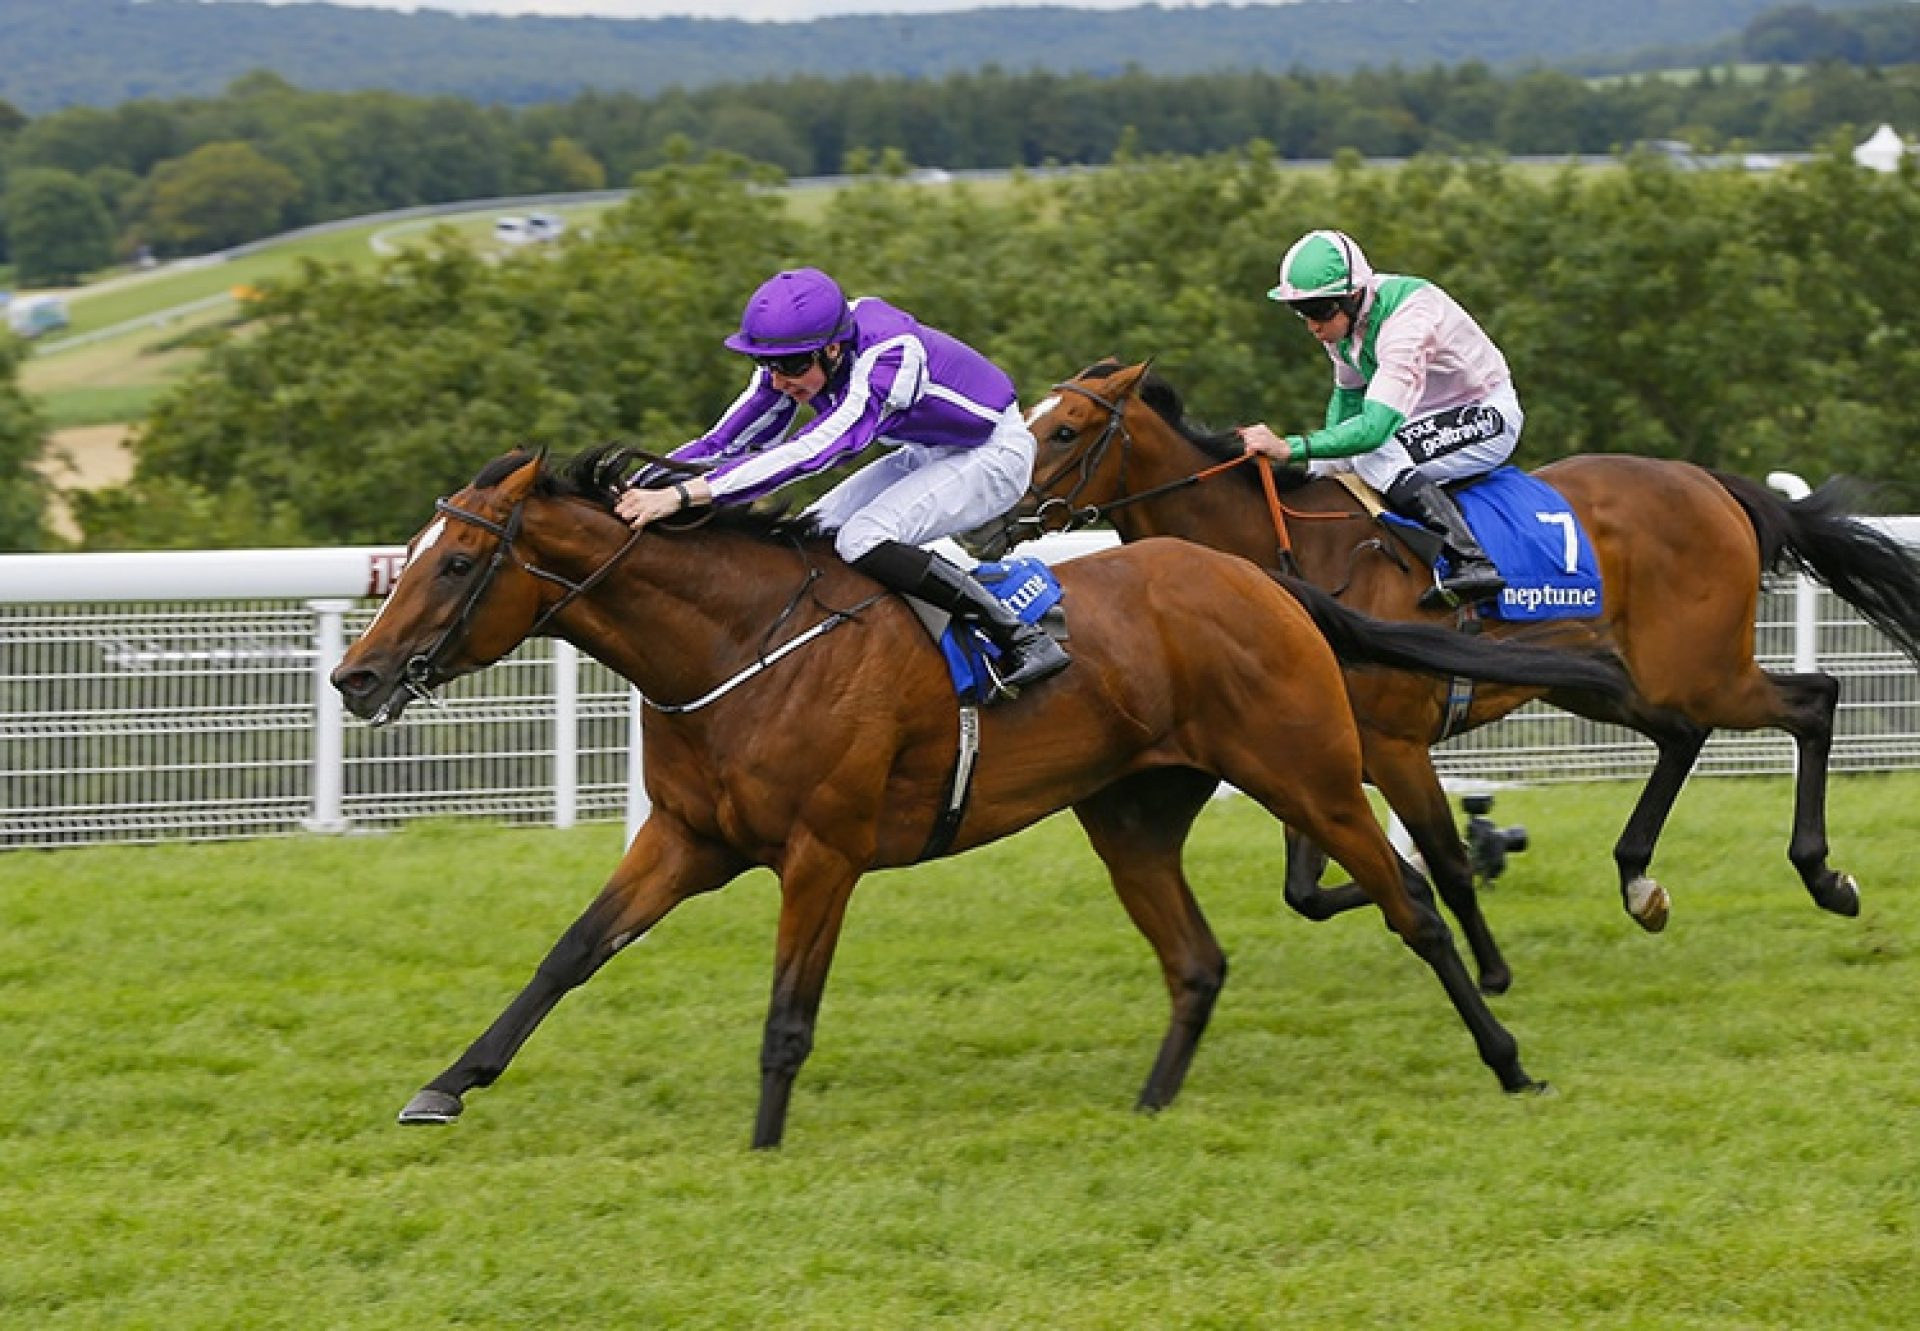 Highland Reel winning the G3 Gordon Stakes at Goodwood